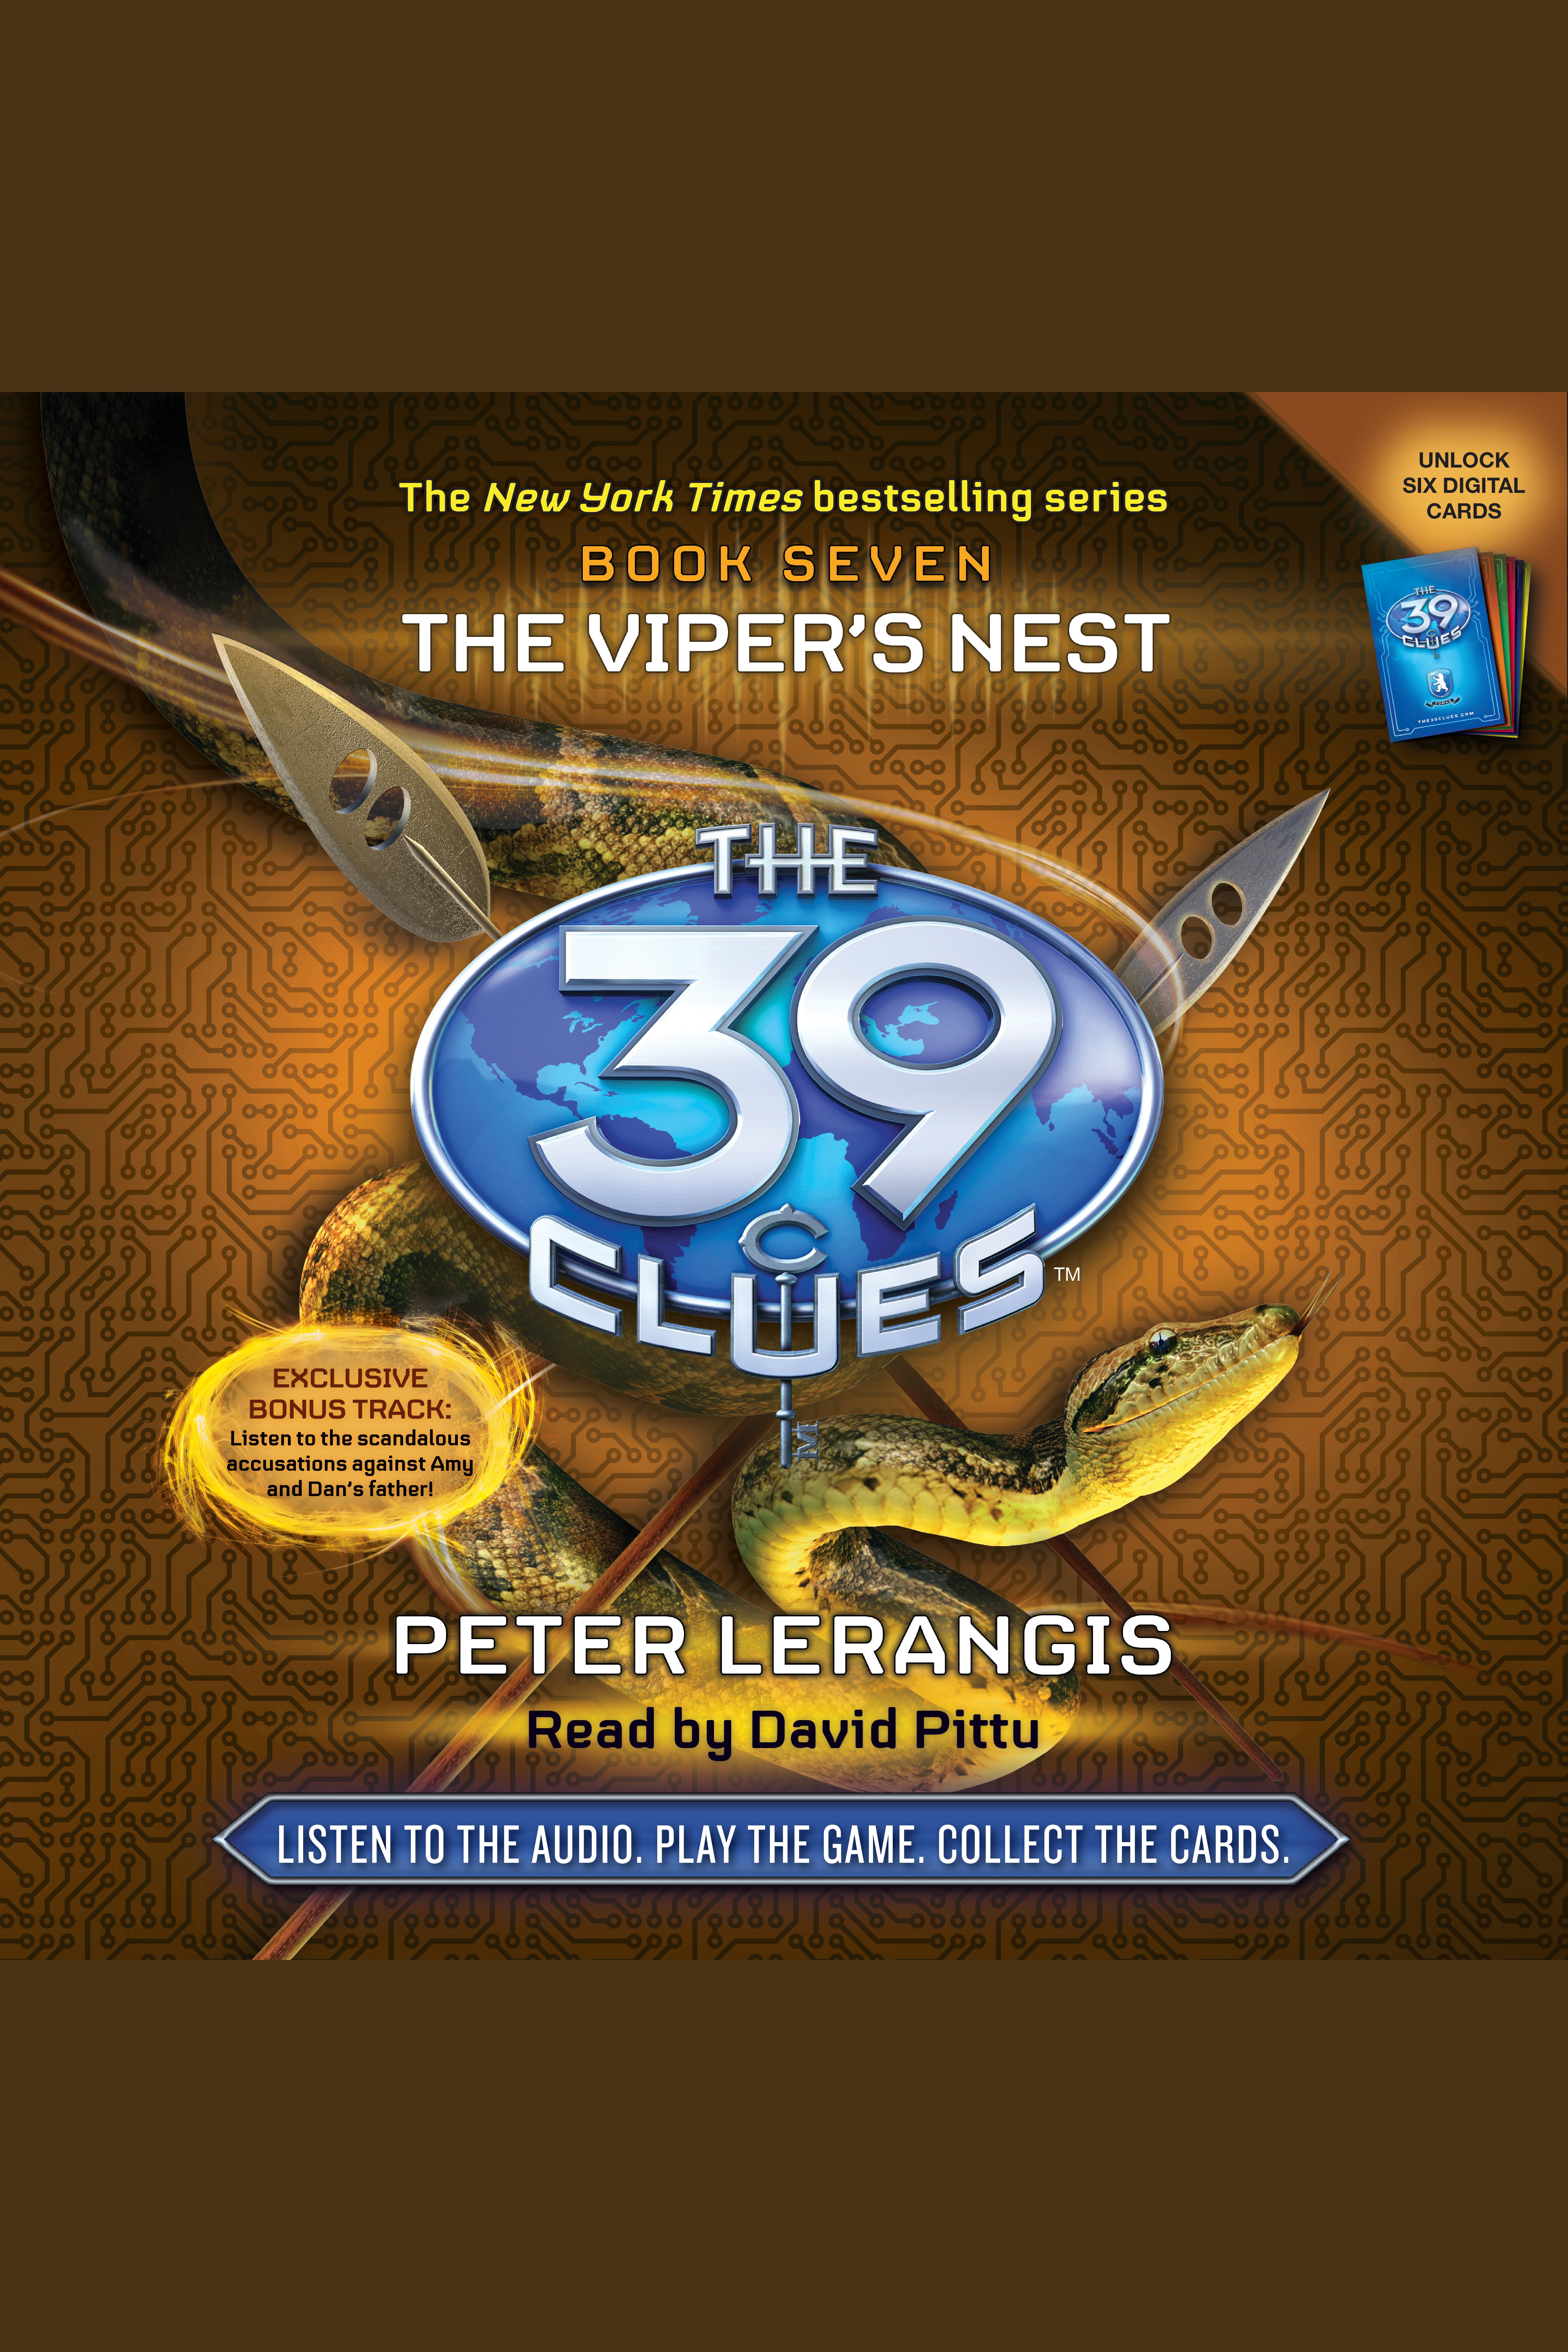 The viper's nest cover image